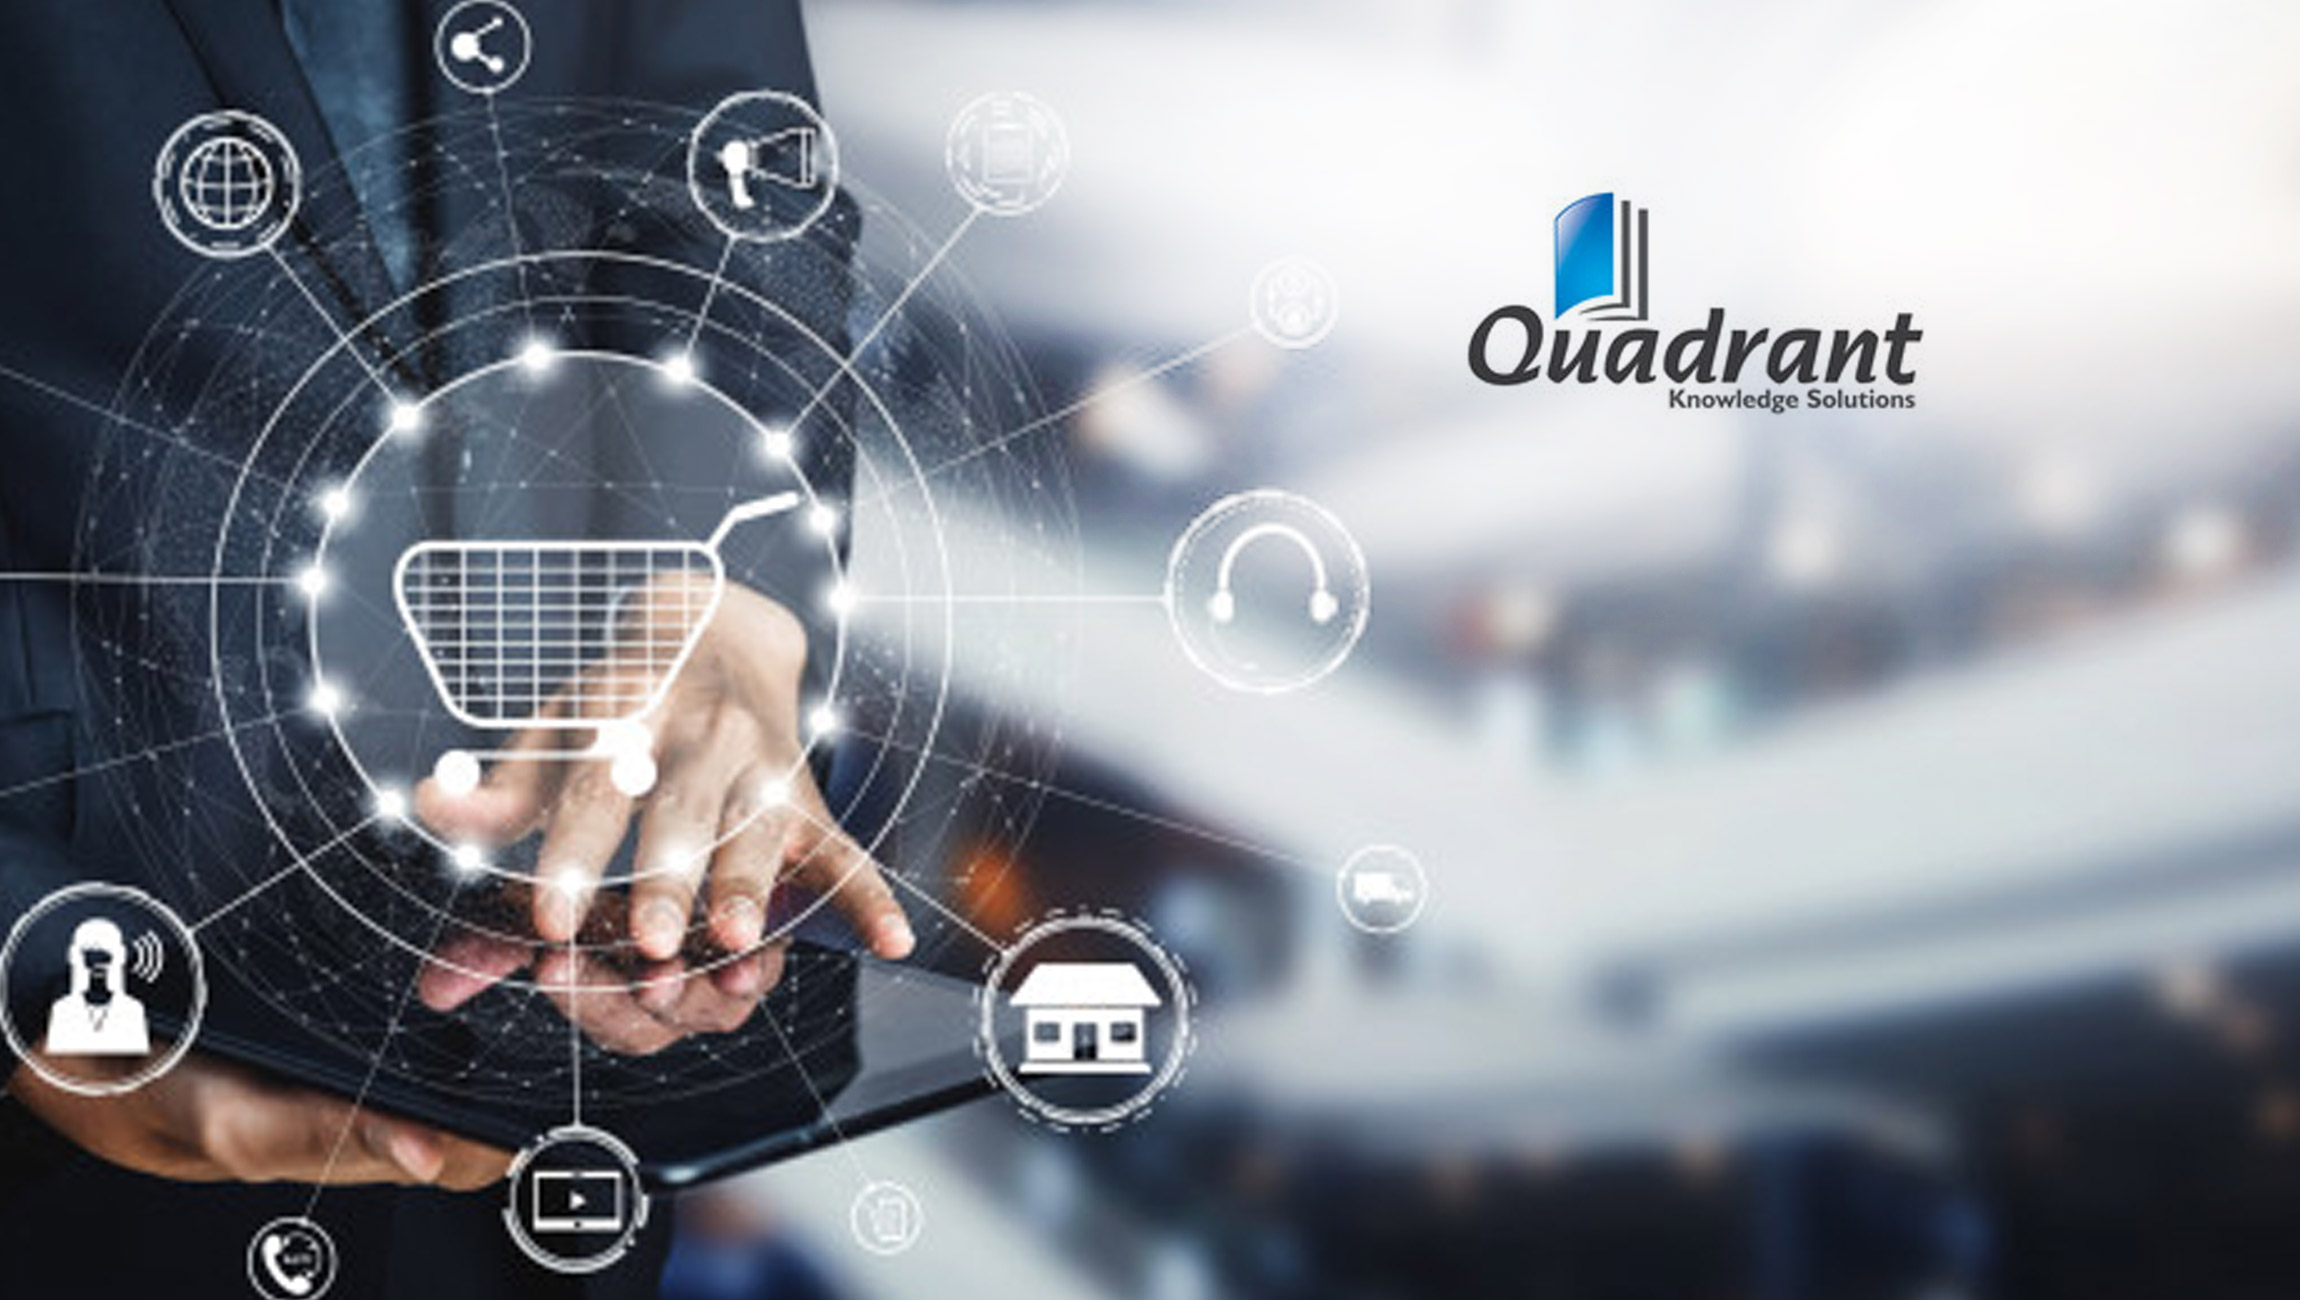 Symphony RetailAI Is Positioned As A Leader In The 2021 SPARK Matrix For Omnichannel Order Management Systems By Quadrant Knowledge Solutions